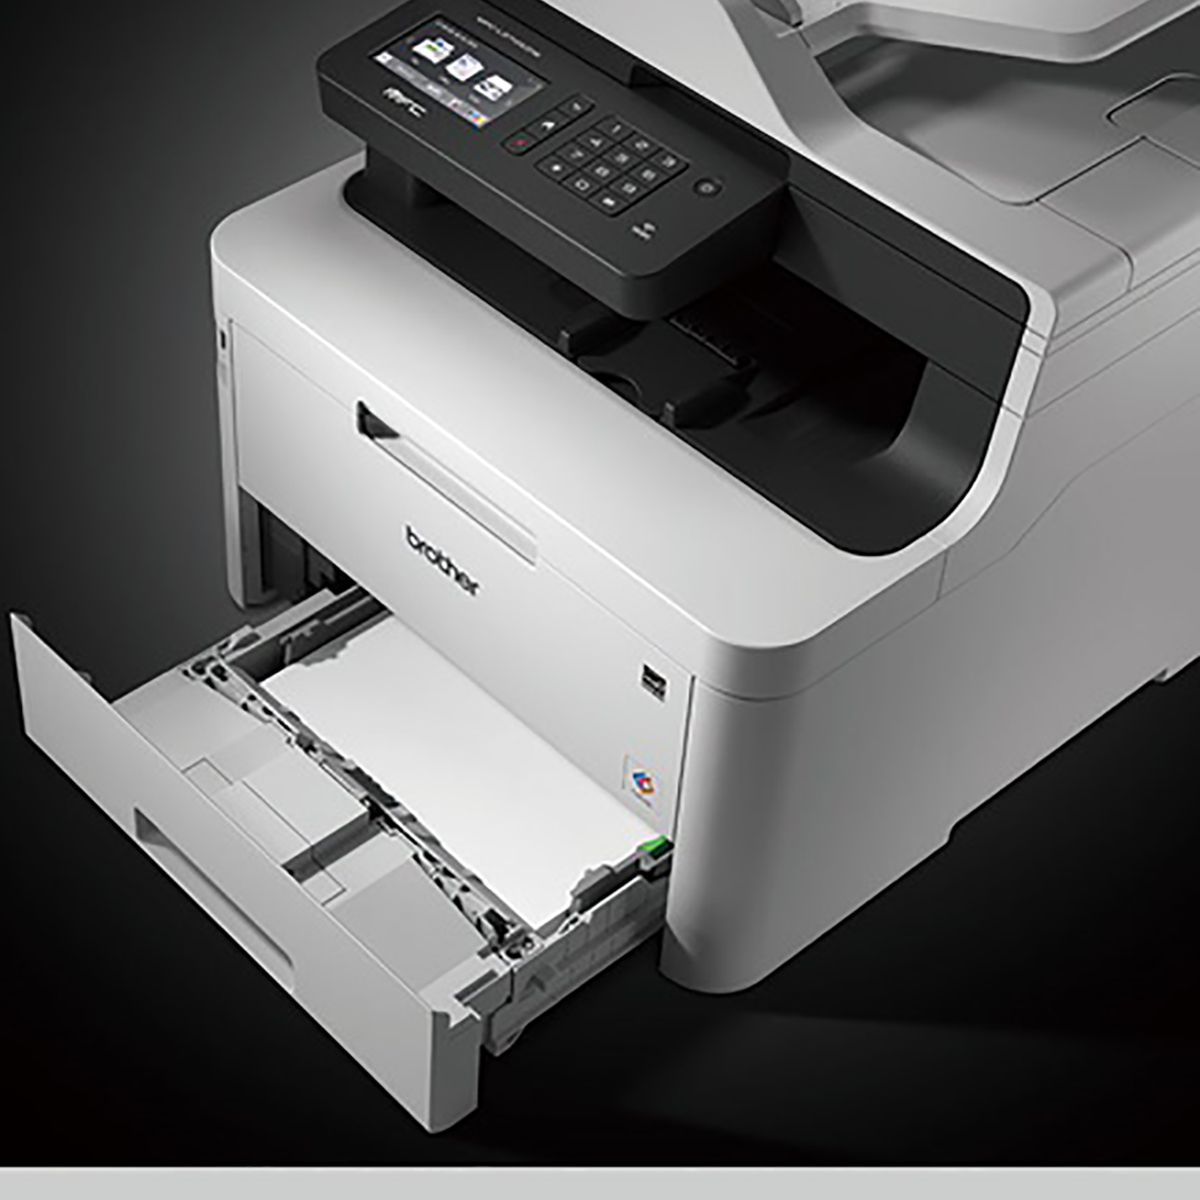 Brother MFCL3750CDW Compact Digital Color All-in-One Laser Print